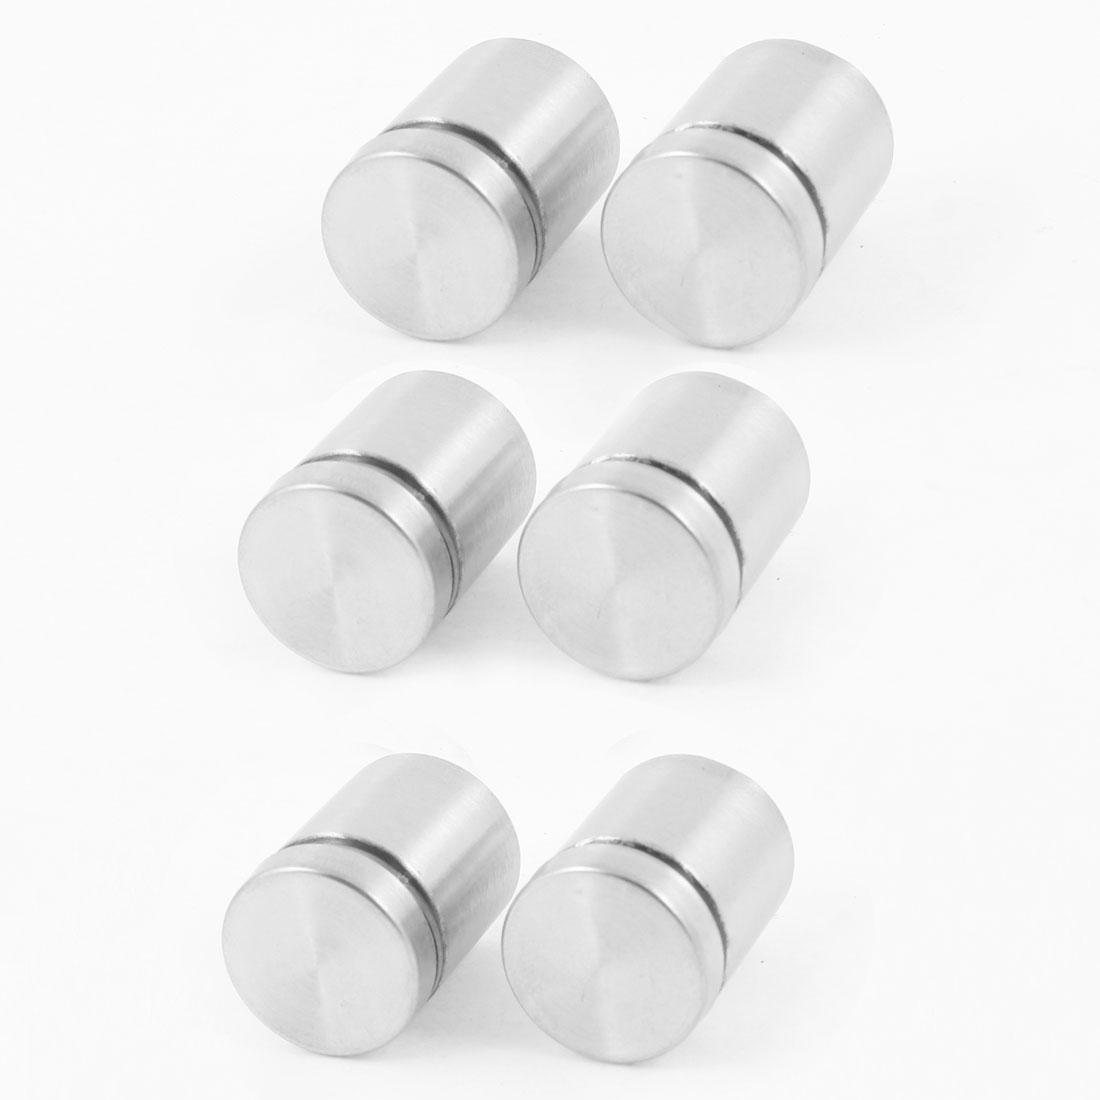 "6pcs Stainless Steel Advertisment Nails Glass Wall Connector Standoff 0.98"" Long"